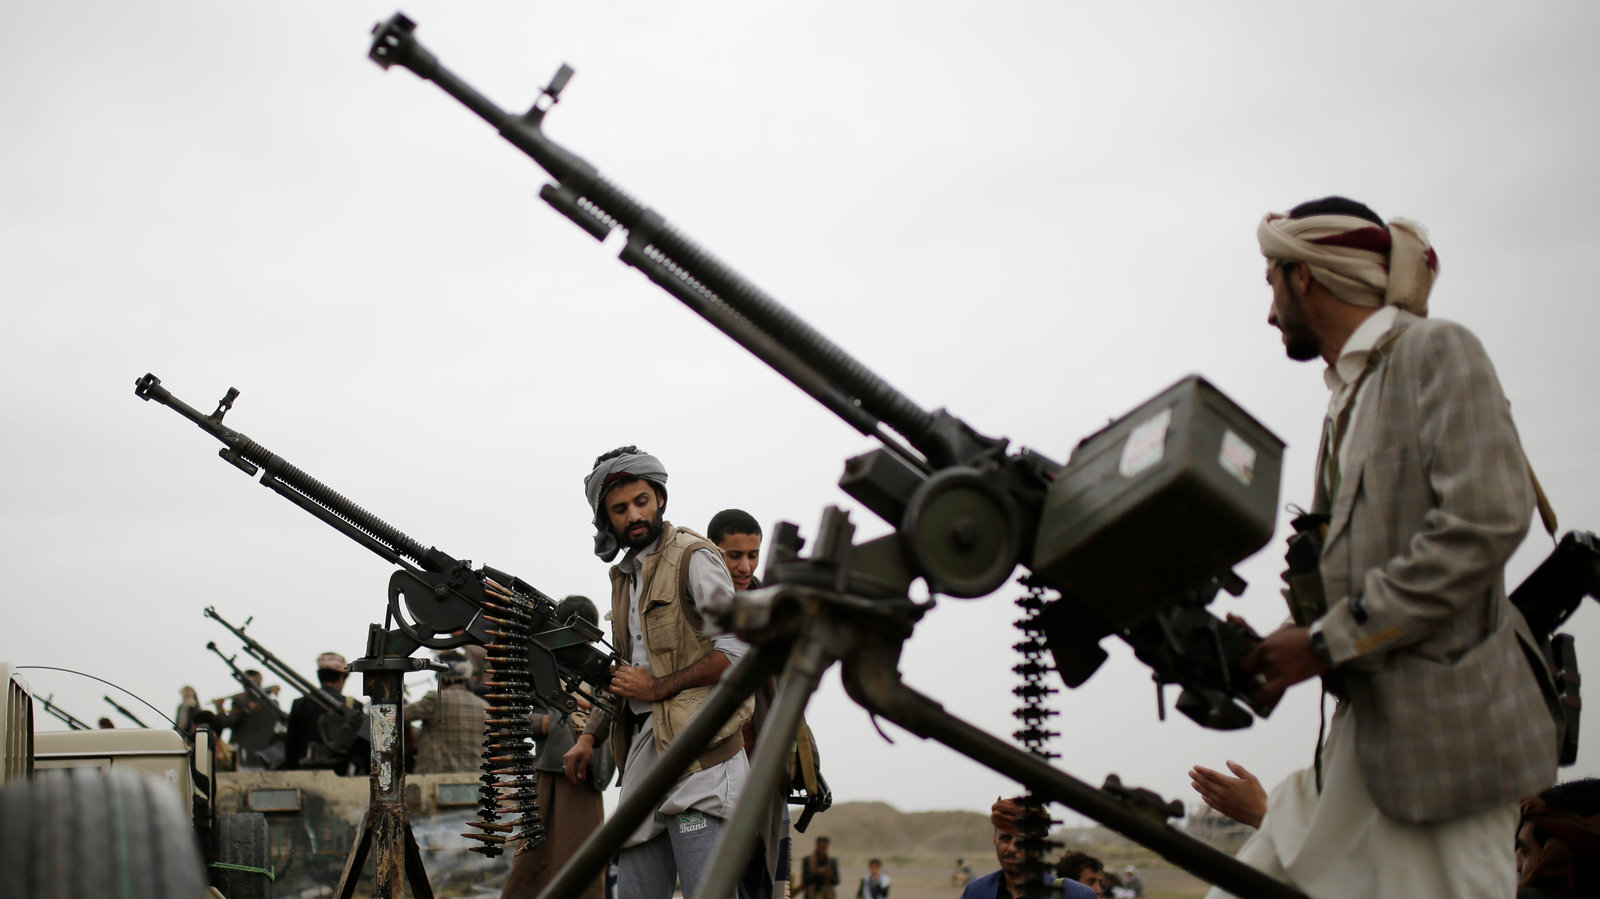 Houthi Forces in Yemen Warn of More Attacks on Saudi Oil ...